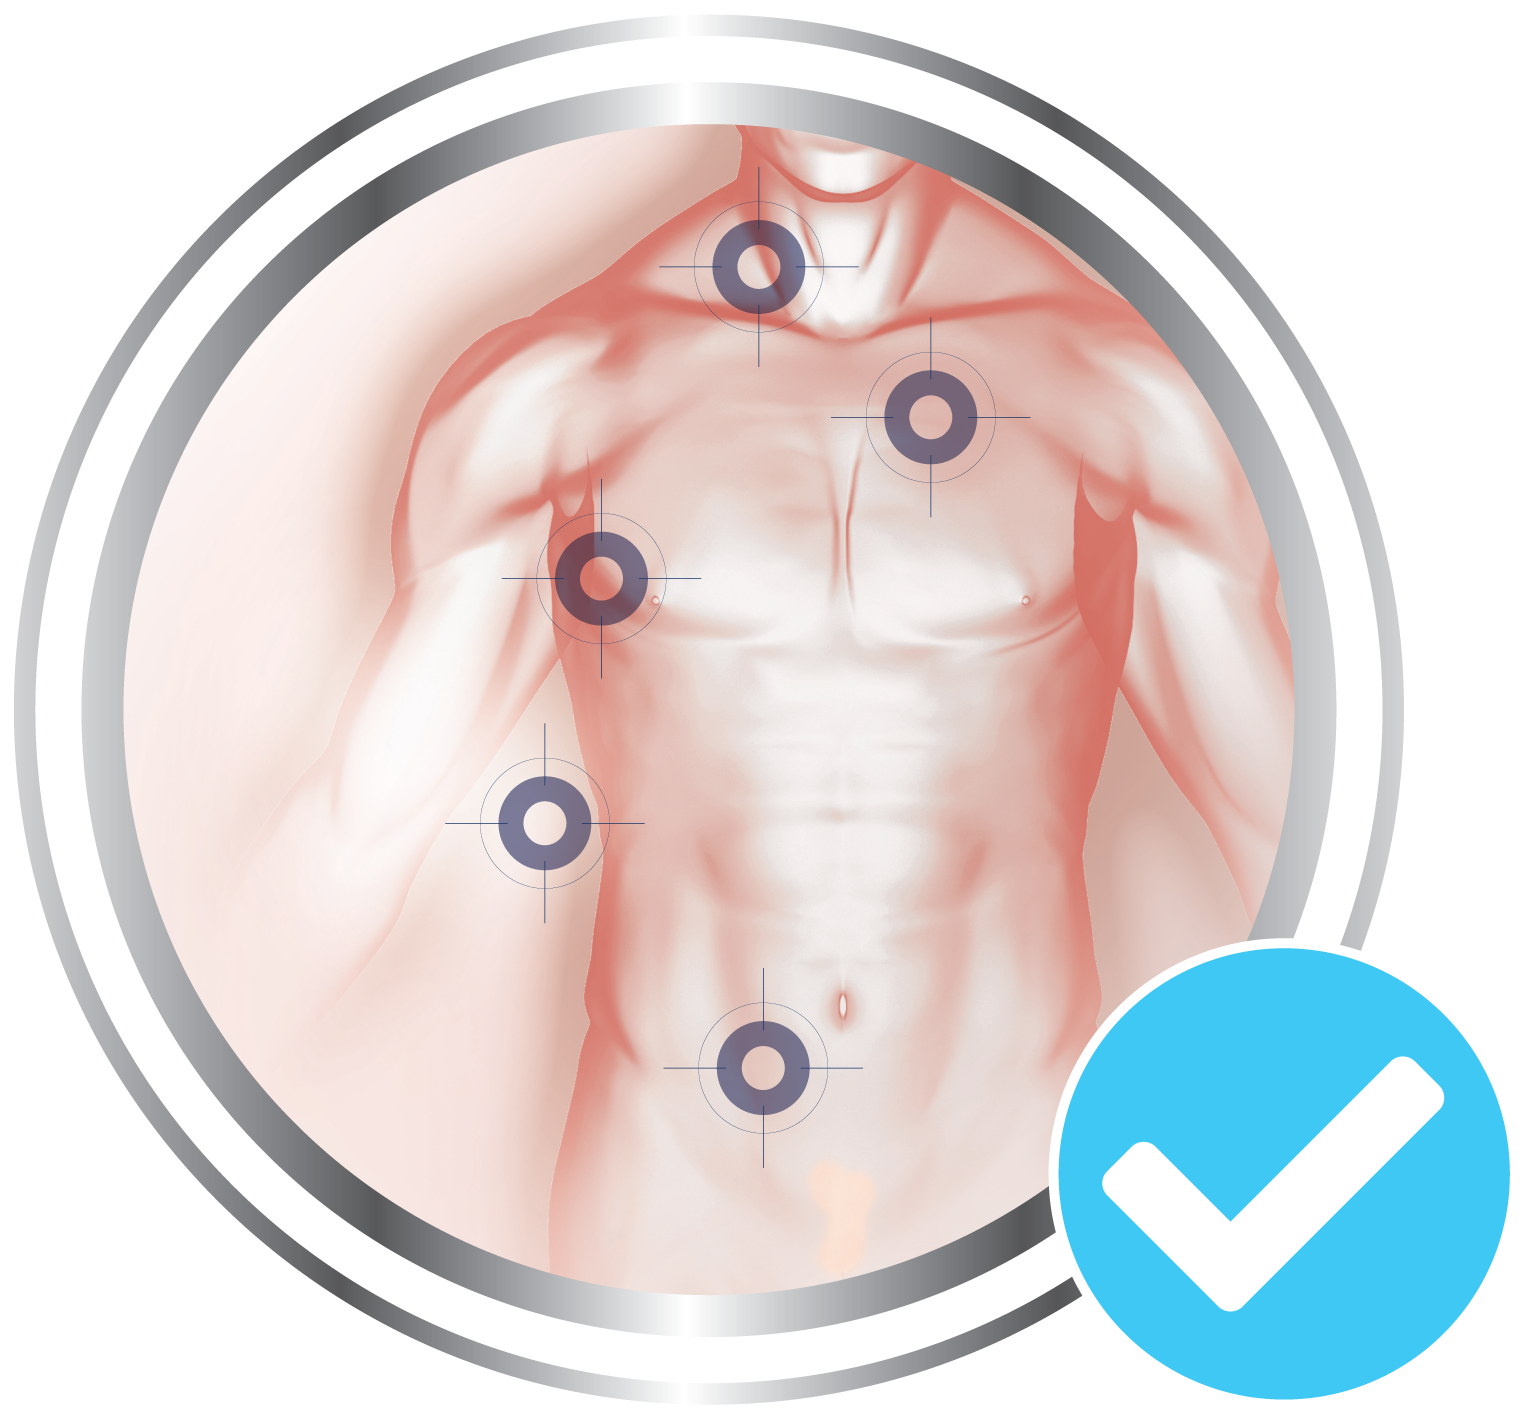 5 locations to be treated by Cryotag skin tag remover